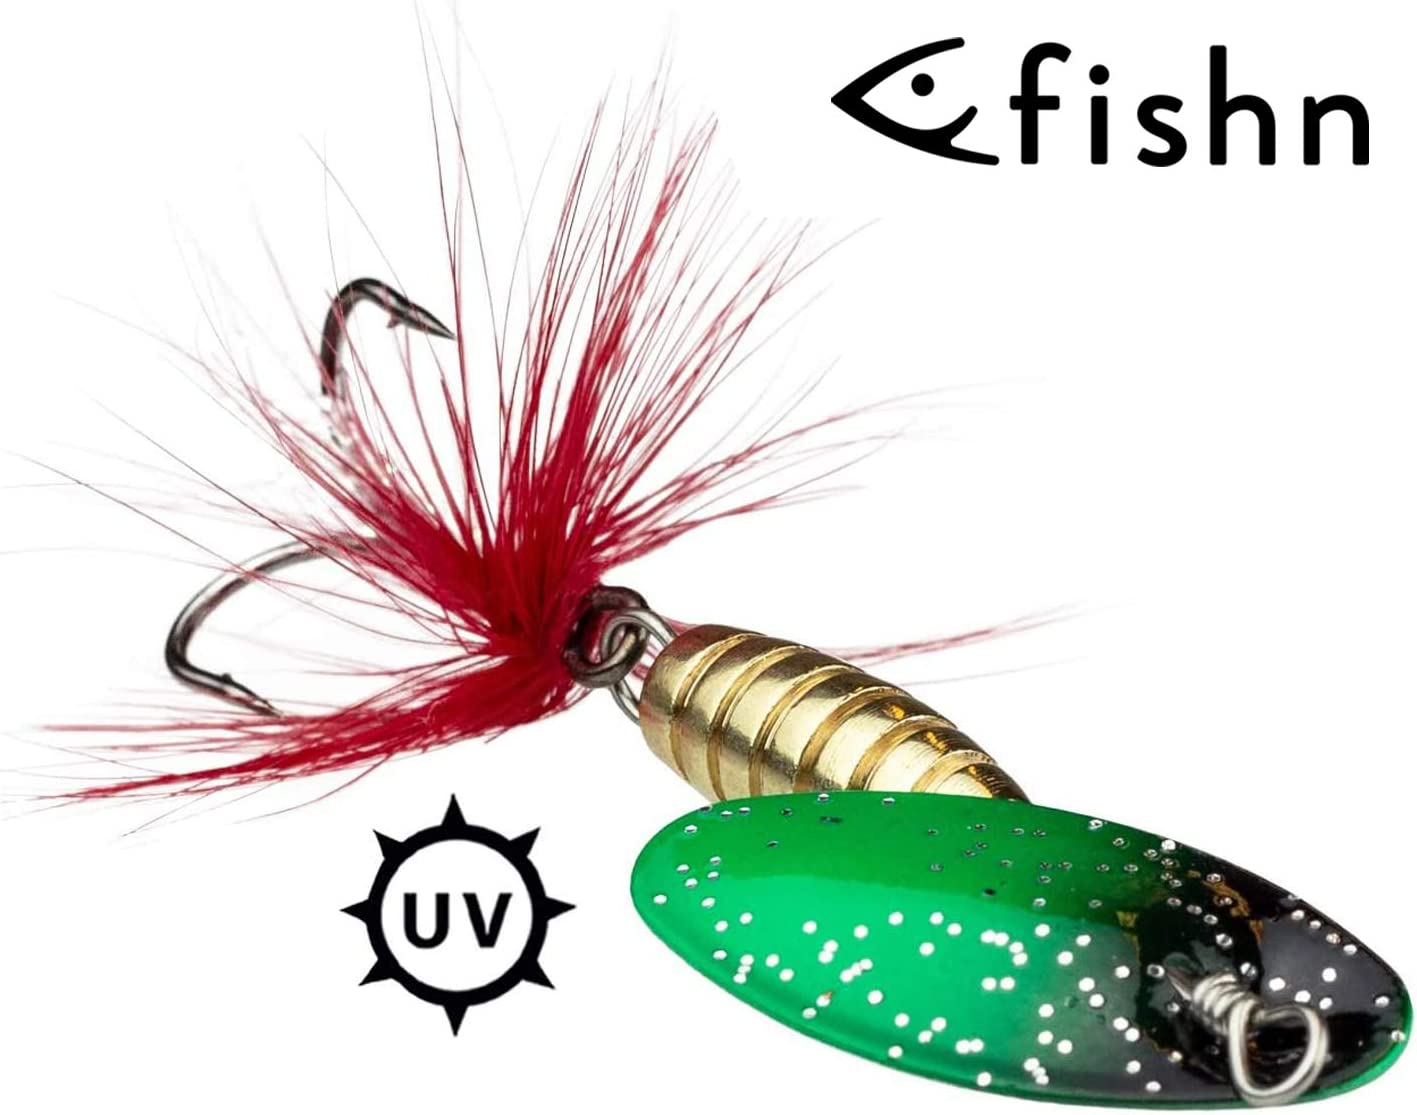 Spinner Set 3x Spinner bait Length: 5.2cm//6cm perch artificial bait for fishing for pike trout Weight: 4.2g//6.5g FISHN SpinnyOne Set